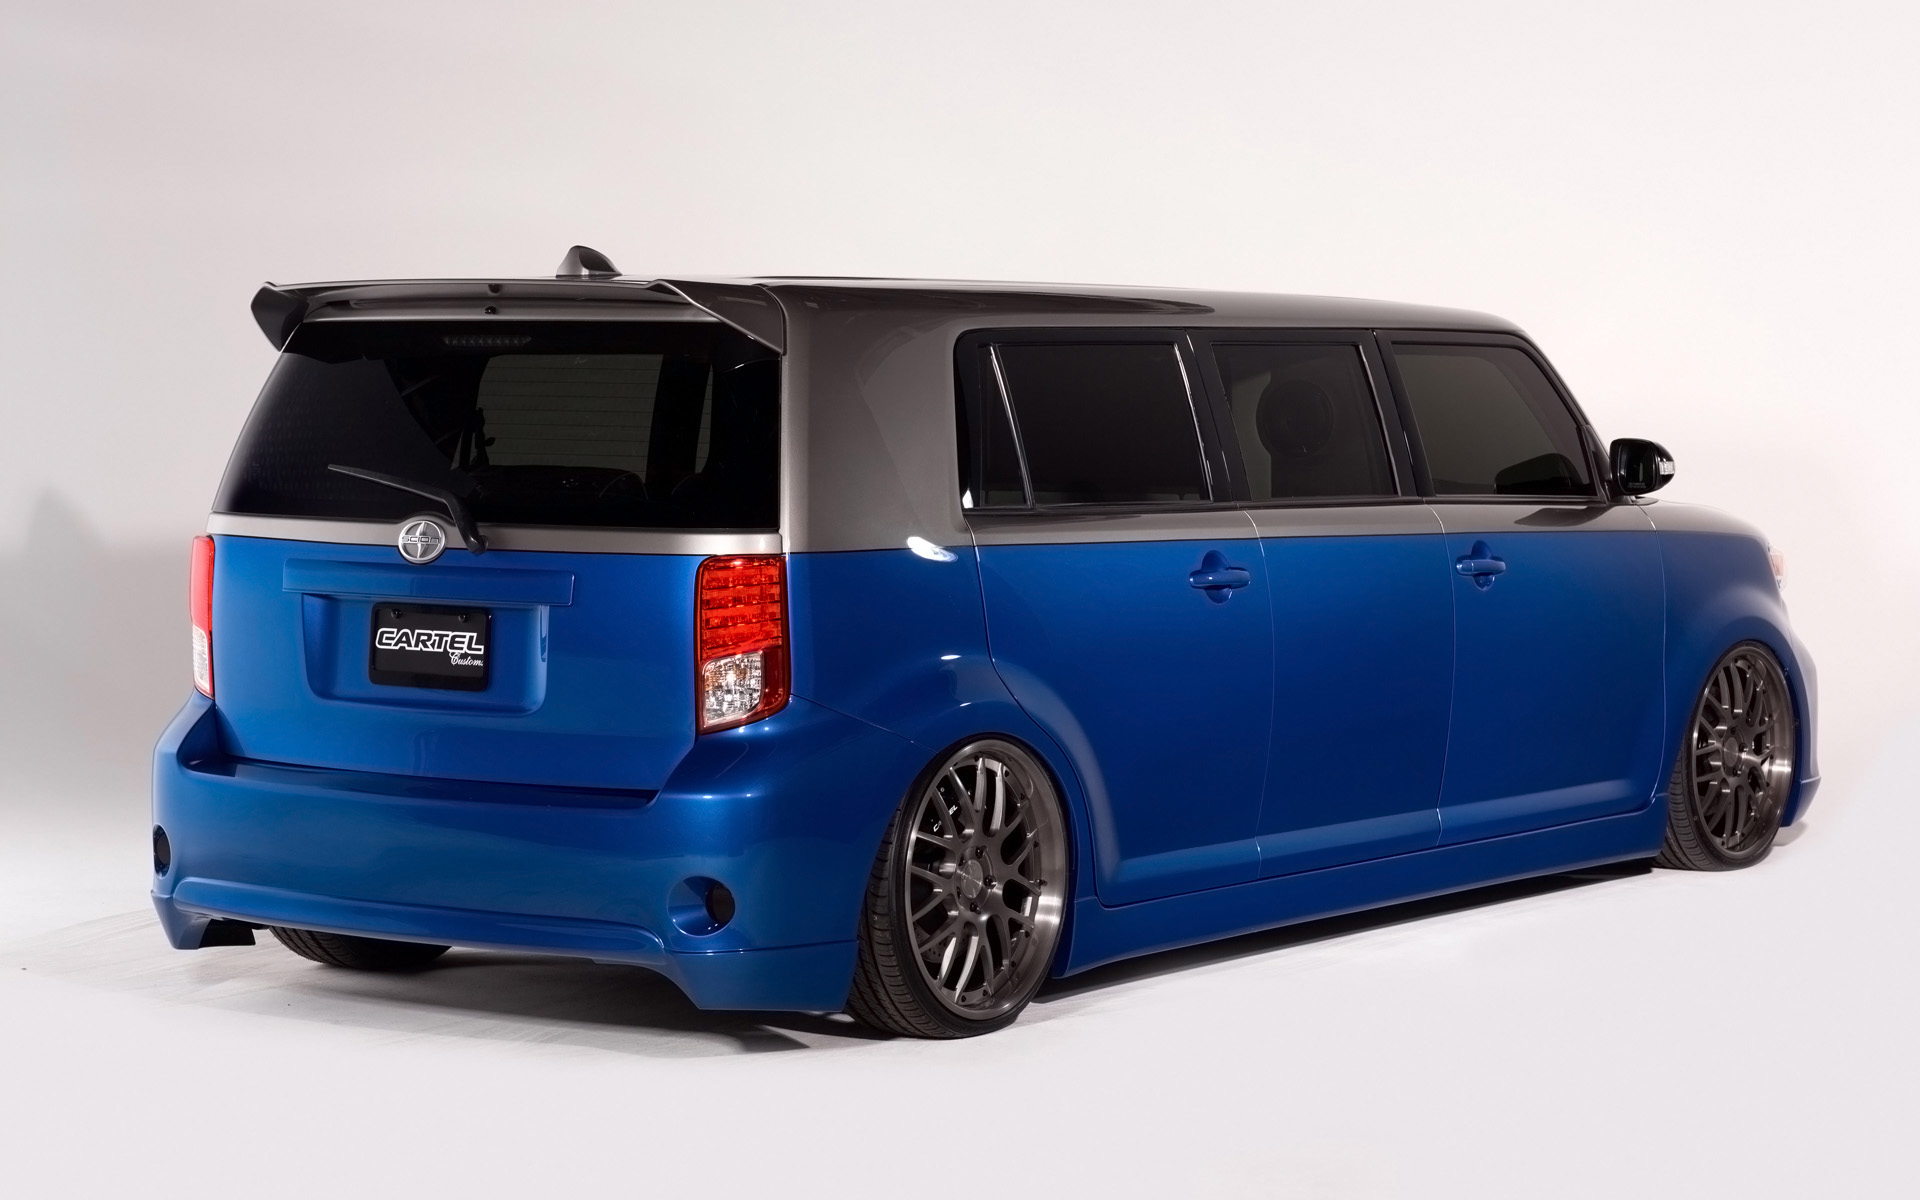 2013 cartel customs scion xb van suv tuning x b f wallpaper 1920x1200 221463 wallpaperup. Black Bedroom Furniture Sets. Home Design Ideas